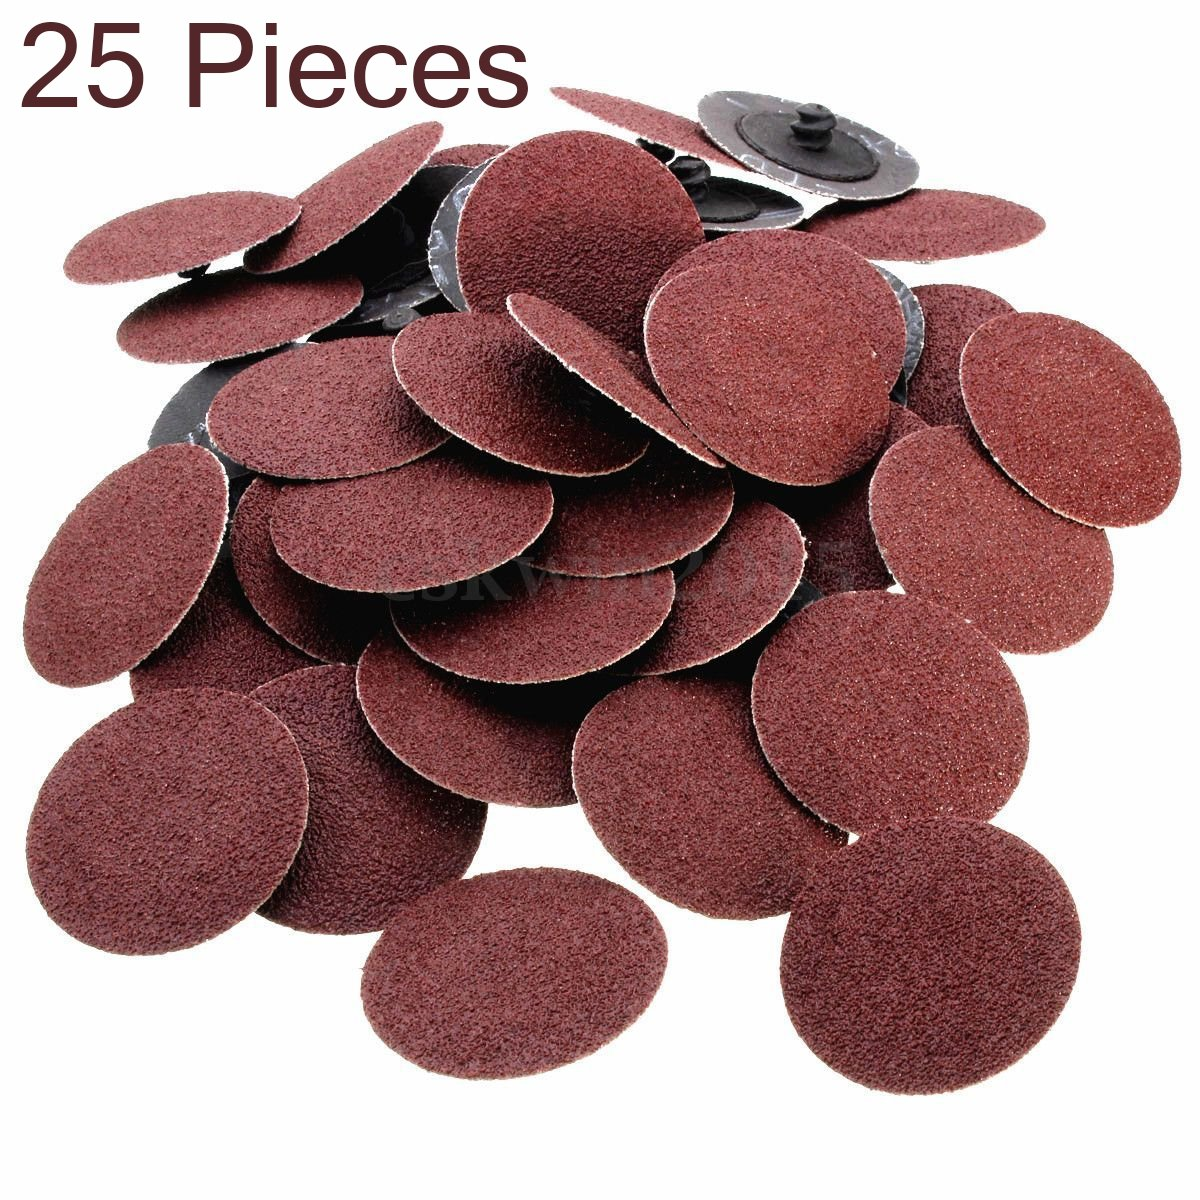 25 Pieces -3 Inch 80 Grit Roll Lock Sanding And Grinding Discs - For Rotary Tools, Die Grinder, Drill, Carpenters, Woodworking- By Katzco by Katzco